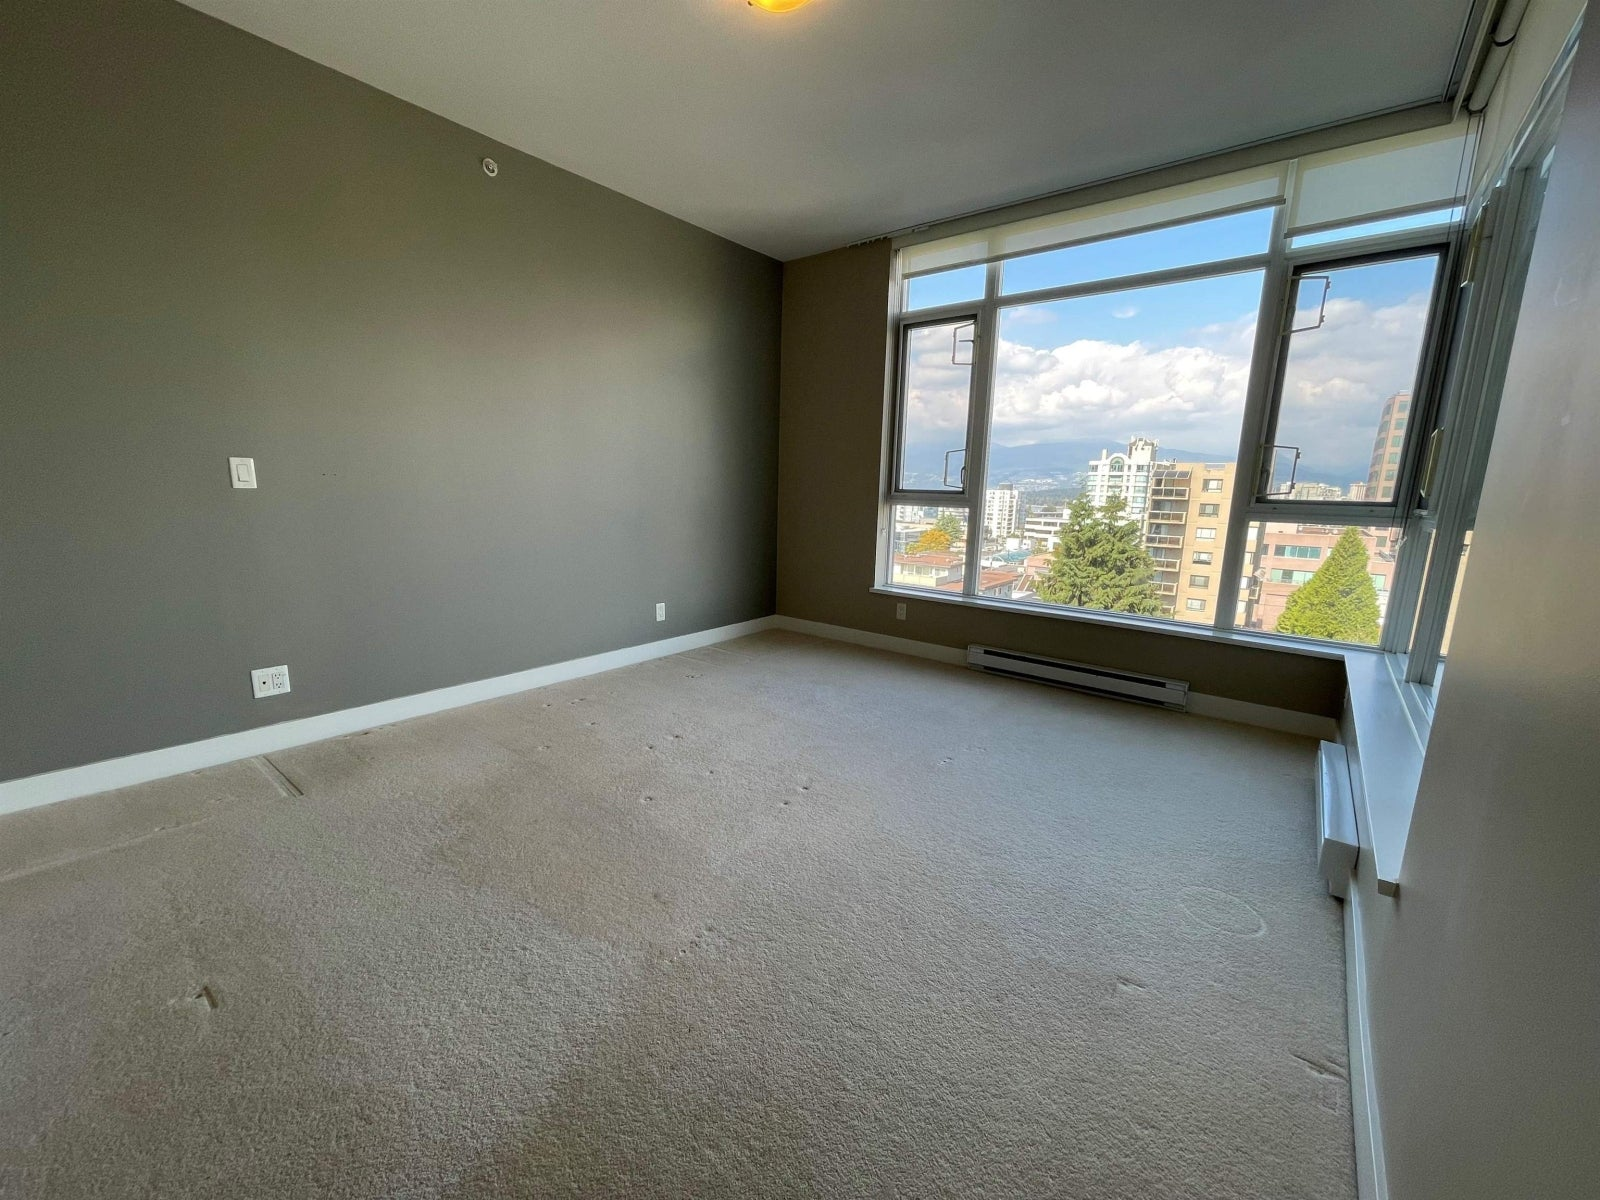 803 1333 W 11TH AVENUE - Fairview VW Apartment/Condo for sale, 2 Bedrooms (R2616288) #18